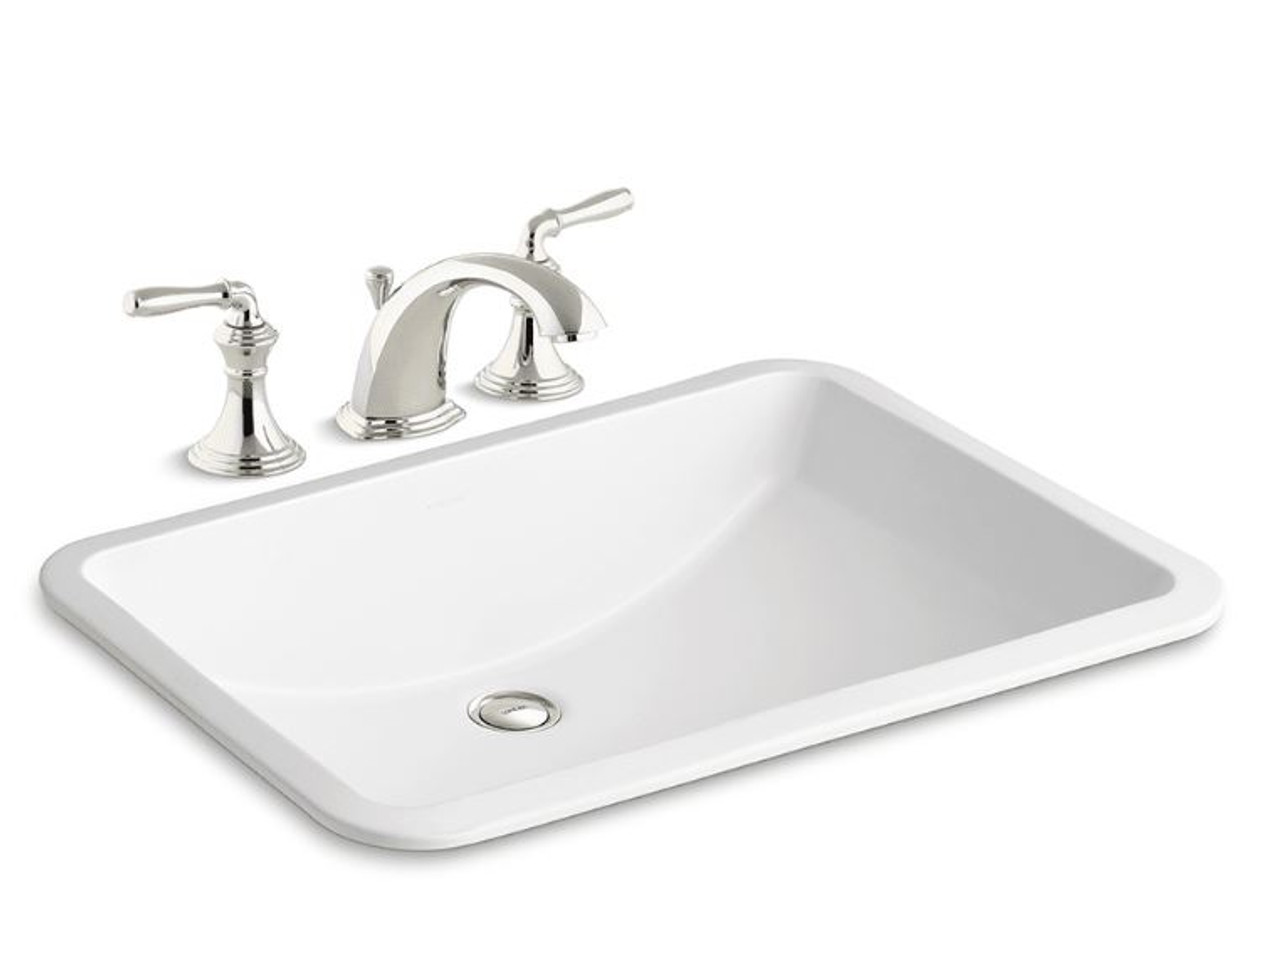 Kohler Ladena 18 3 8 Undermount Bathroom Sink With Overflow And Devonshire Widespread Bathroom Faucet With Pop Up Drain Assembly Royal Bath Place